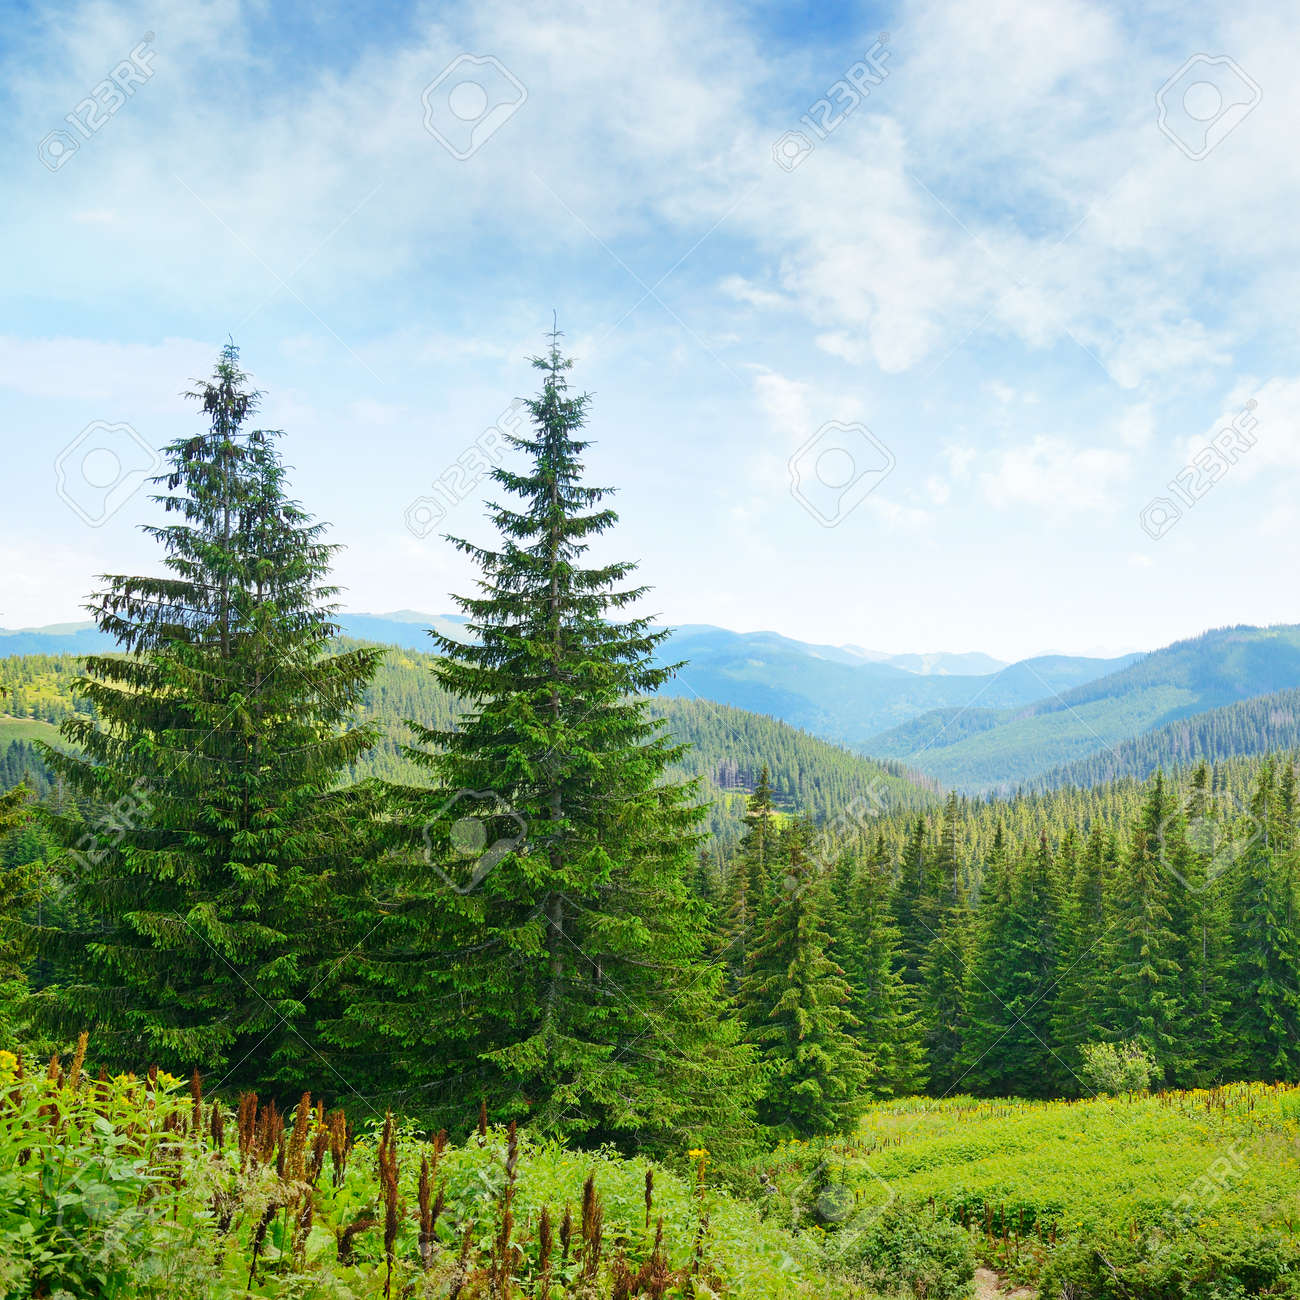 Beautiful pine trees on background high mountains. - 33533302